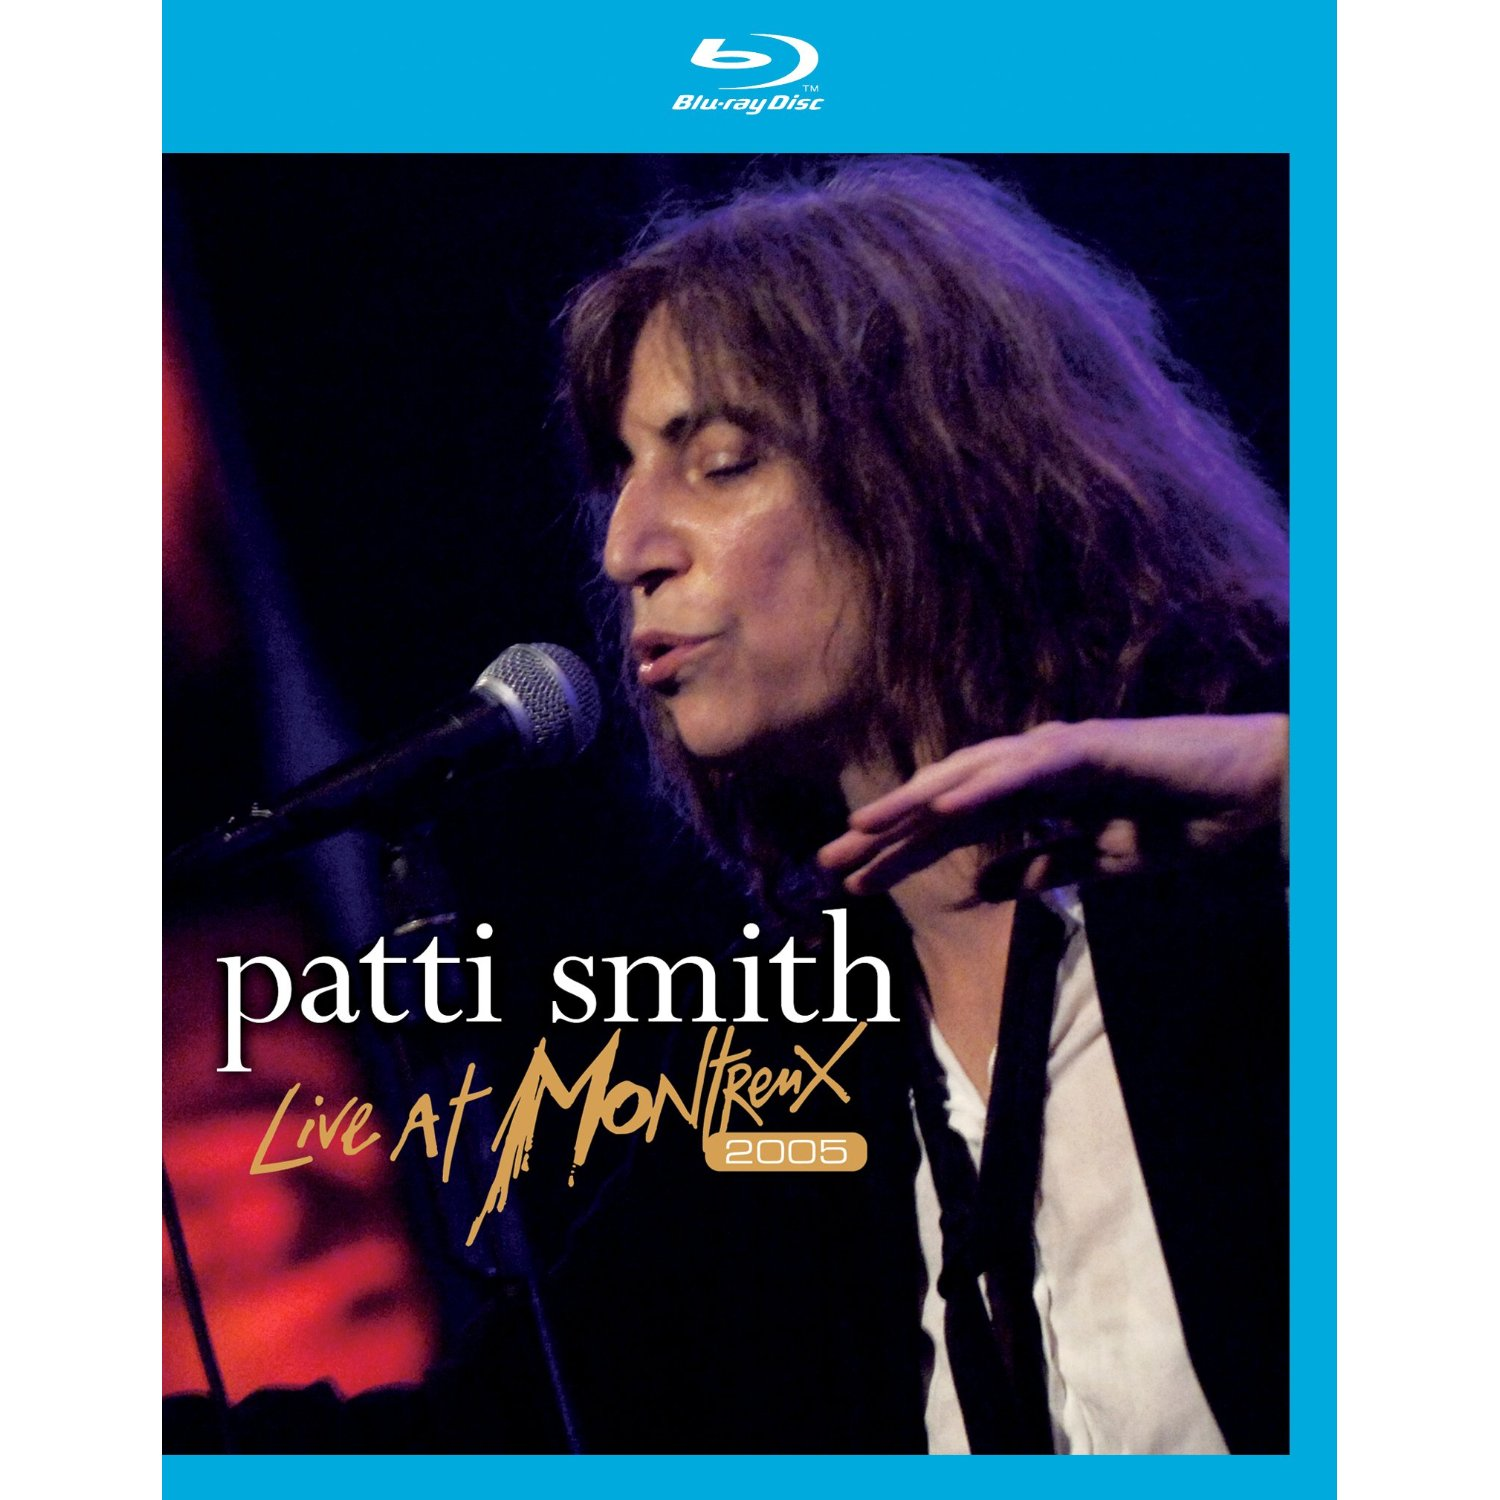 Patti Smith Live at Montreux (2005)